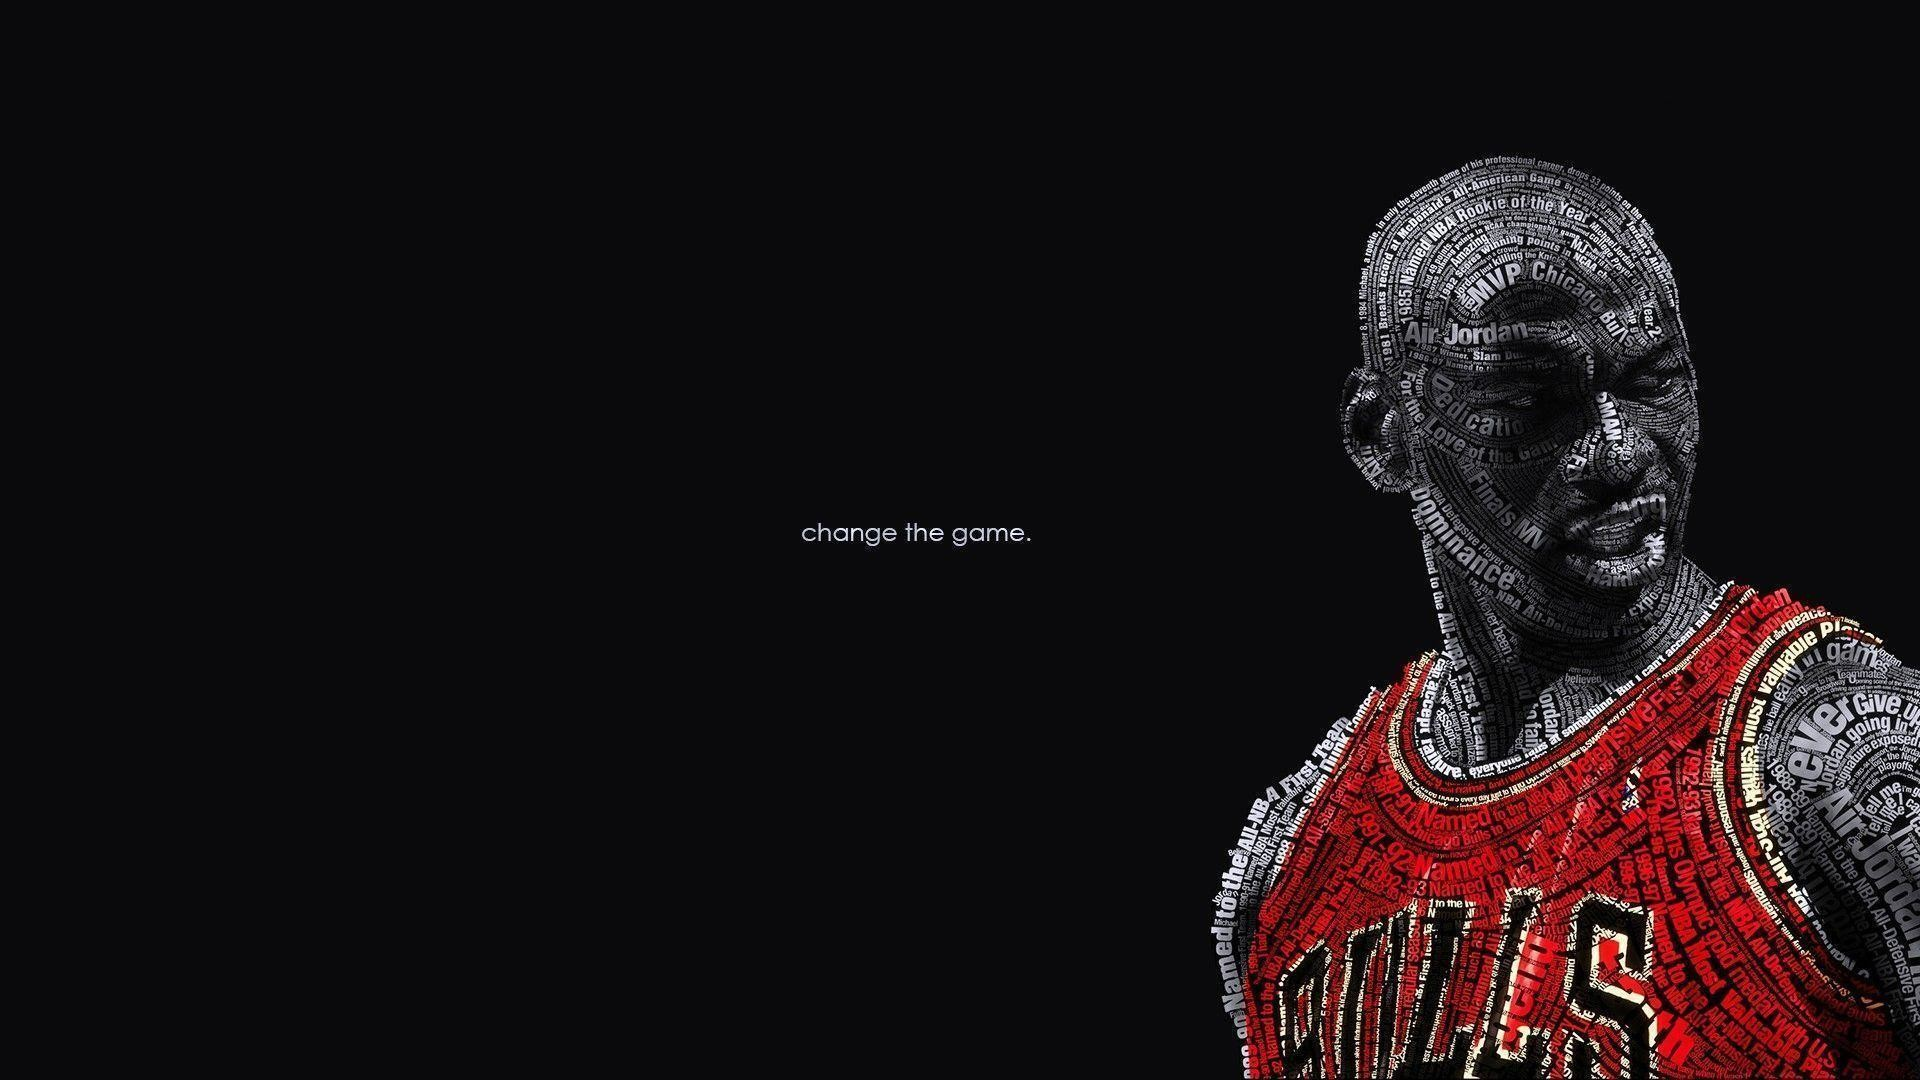 1920x1080 Michael Jordan Logo 37 117057 Images HD Wallpapers| Wallfoy.